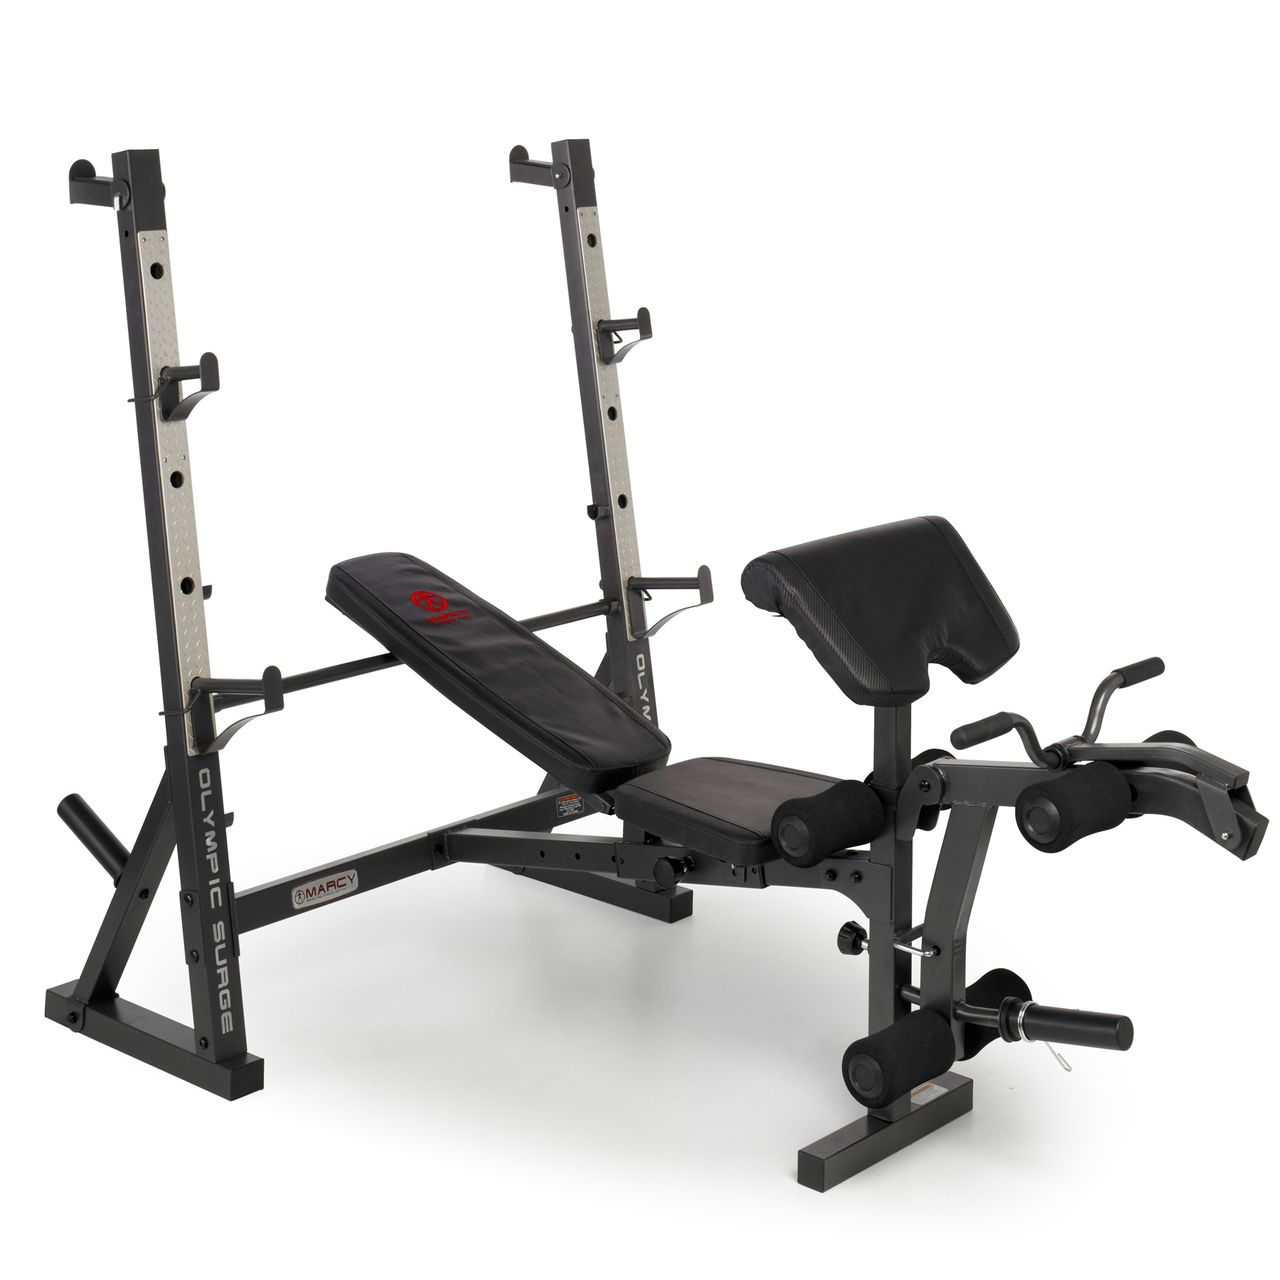 Squat Rack Bench Part - 19: The Marcy Diamond Elite Olympic Weight Bench With Squat Rack For £275.00.